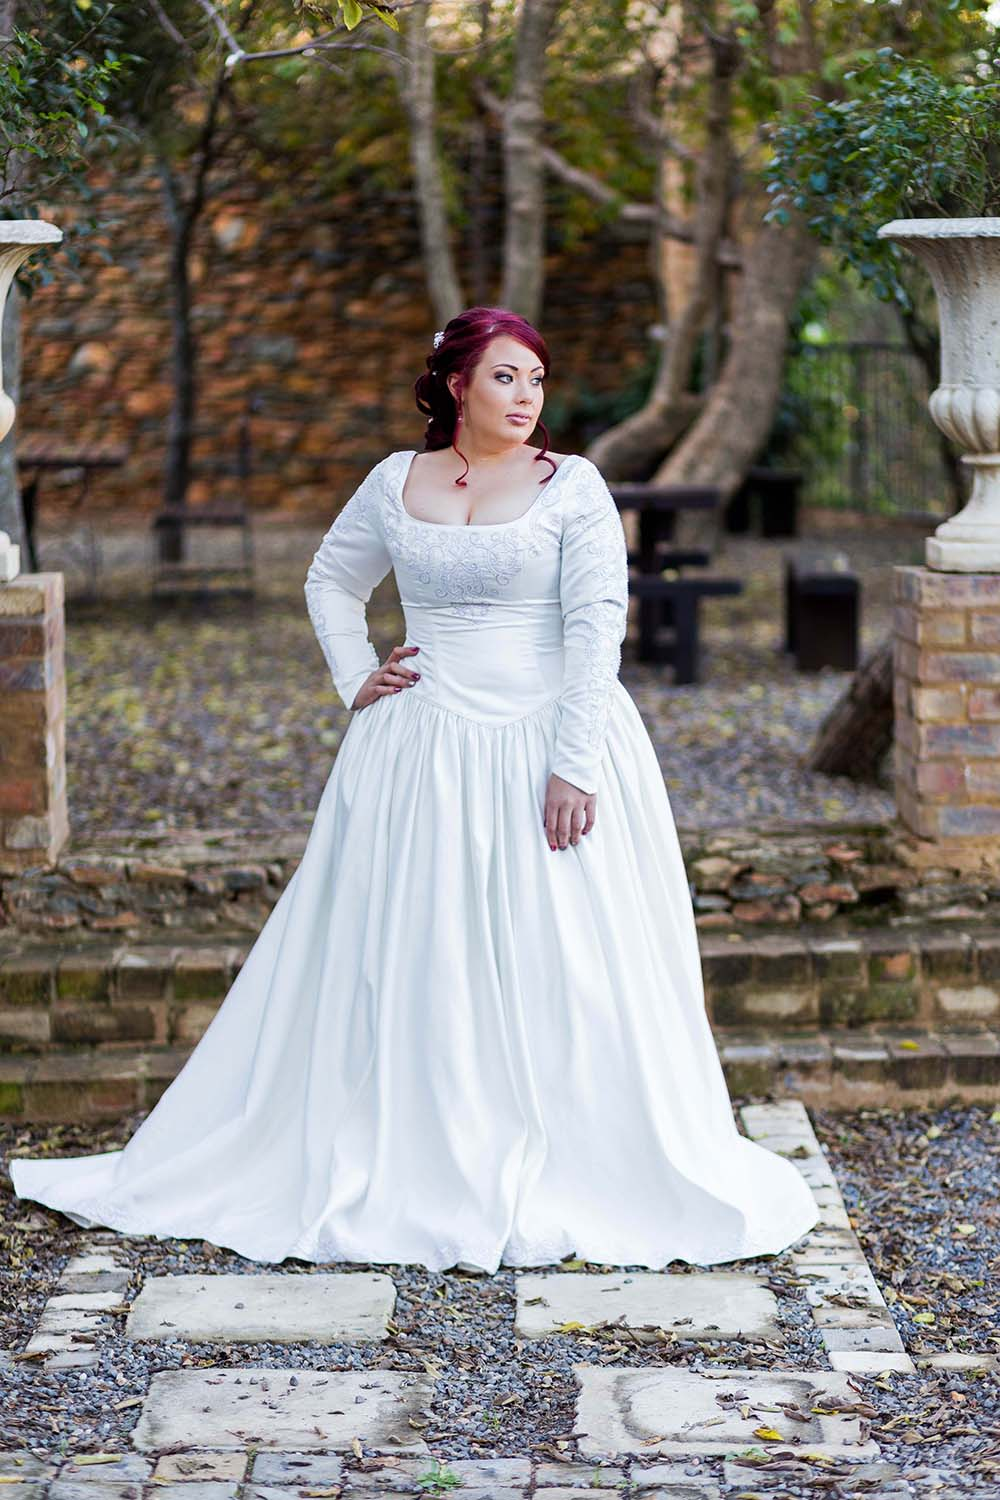 medieval-themed-wedding-medieval-wedding-dgr-photography-castle-wedding-97